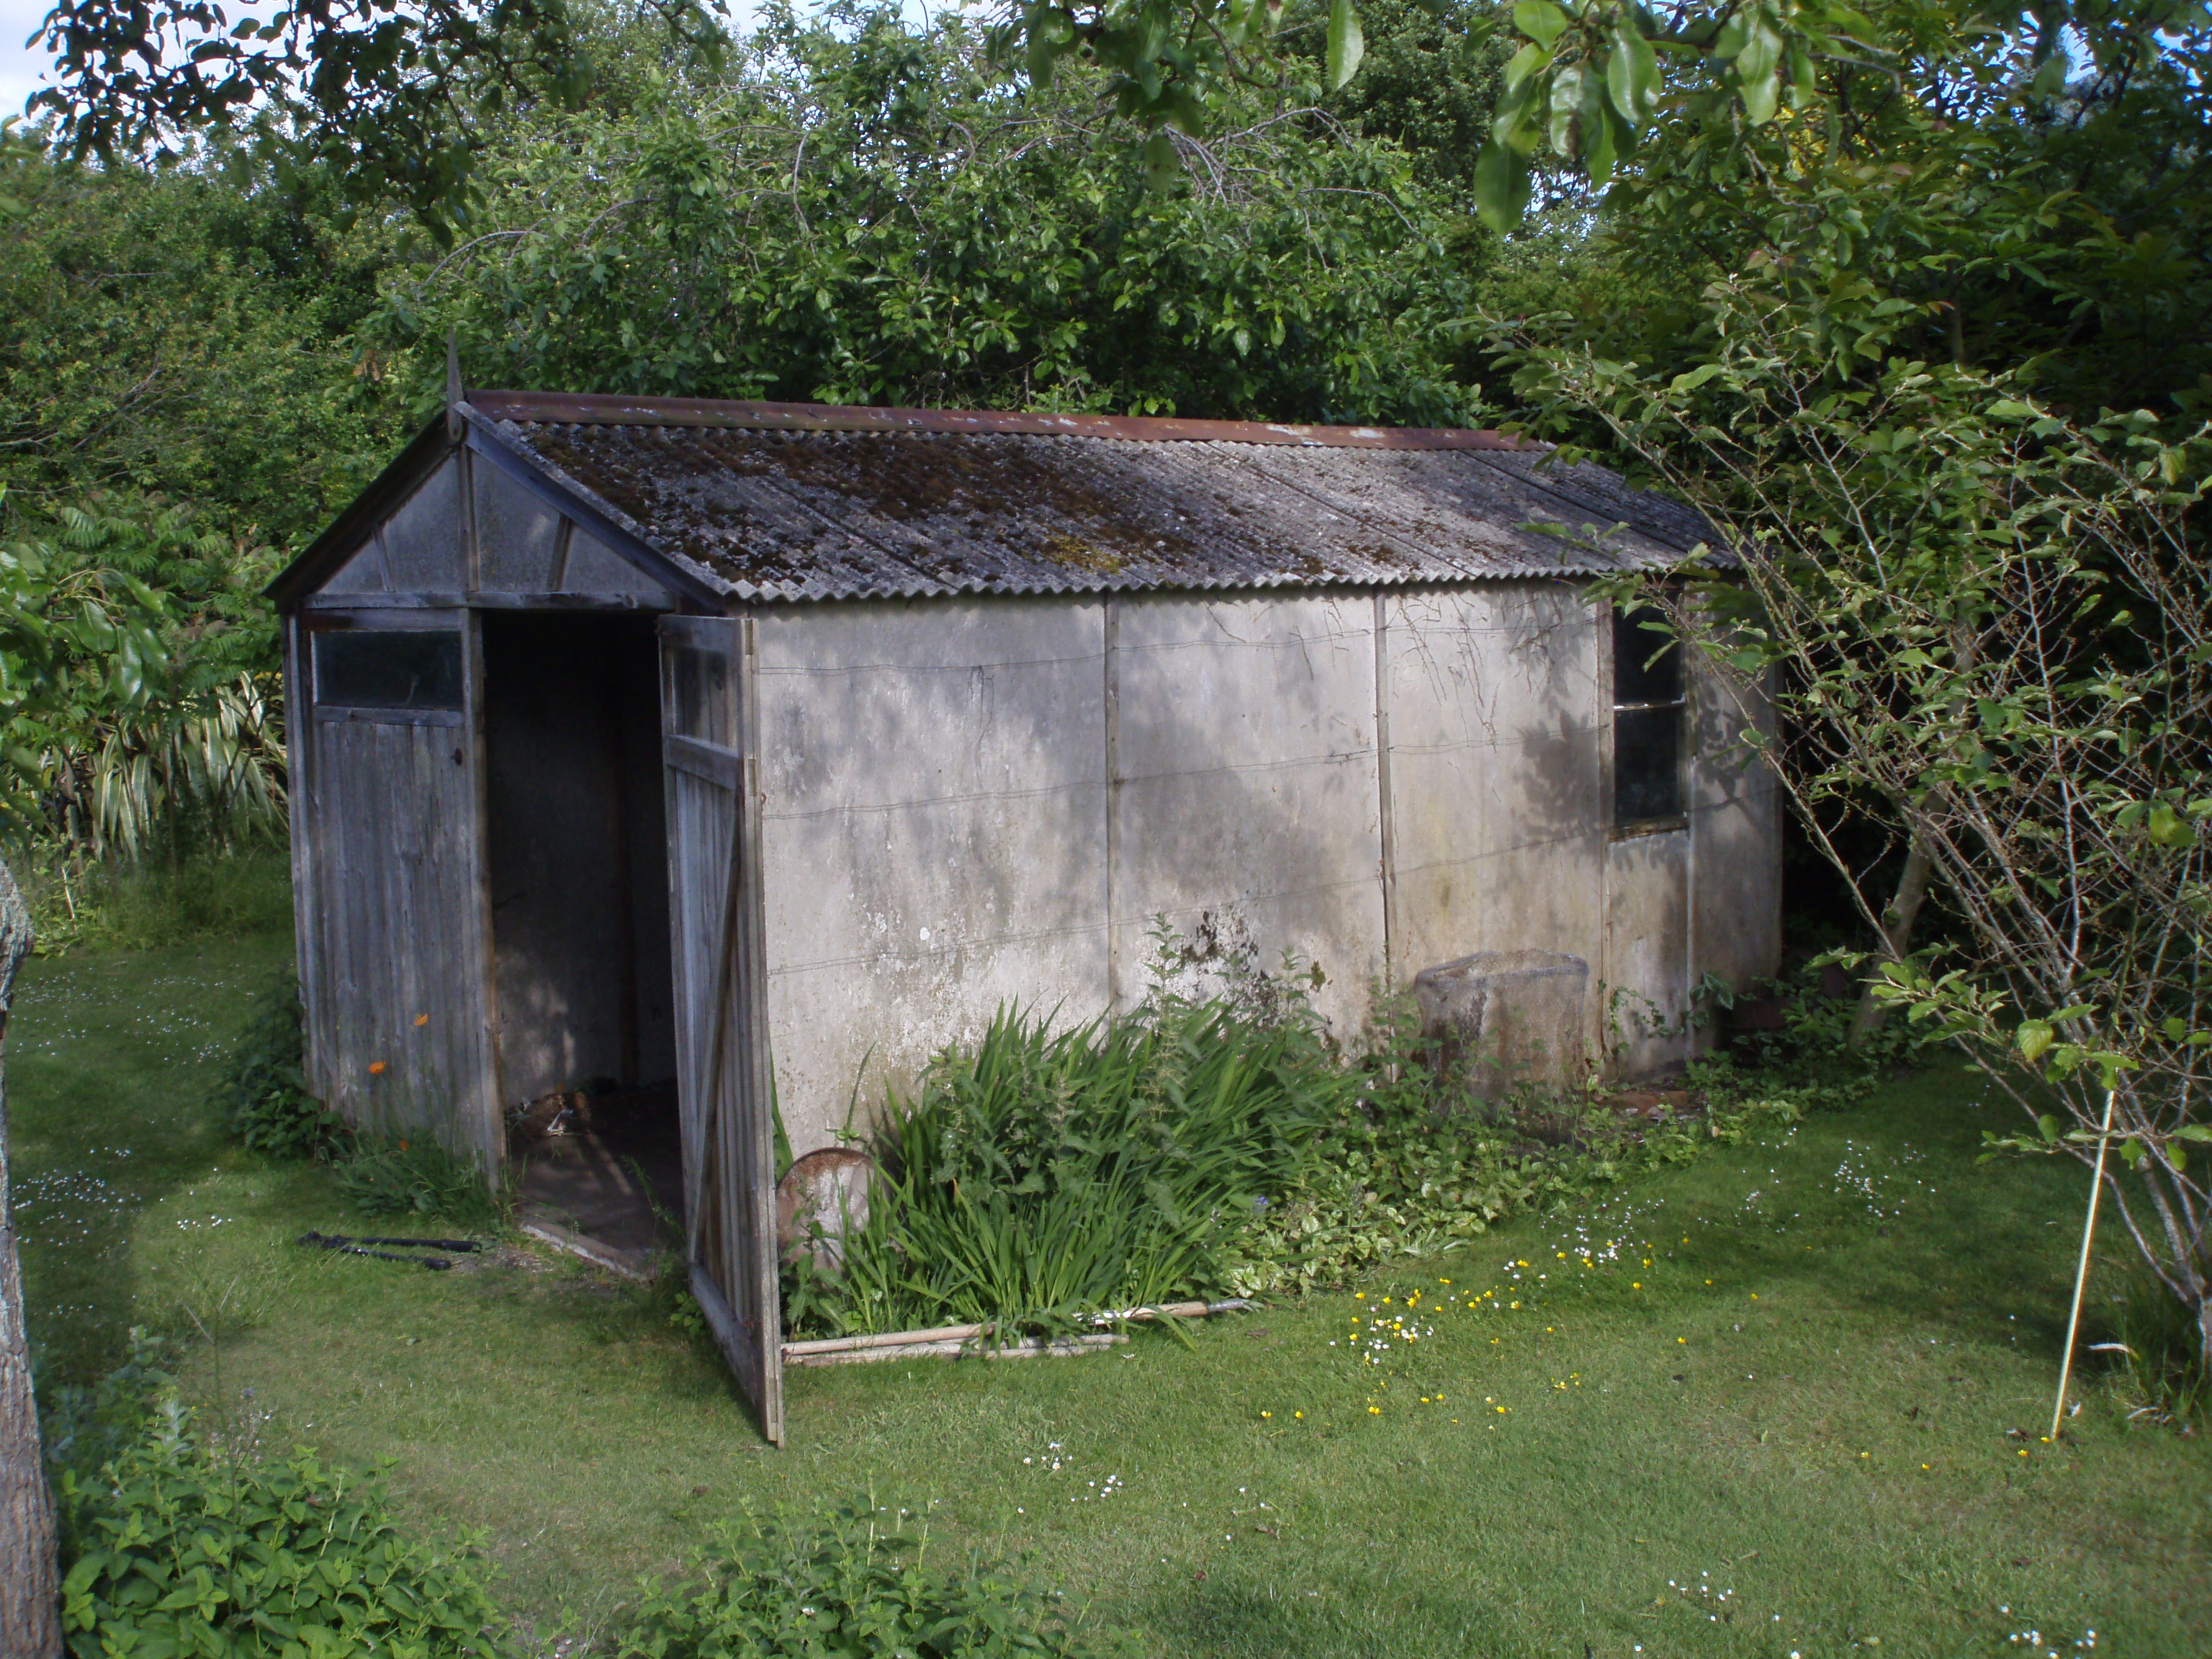 We Where Recently Asked To Quote On Removing A Shed And Its Contents From A  Garden In Ascot. The Shed Was About Thirty Years Old And Had An Asbestos  Roof ...